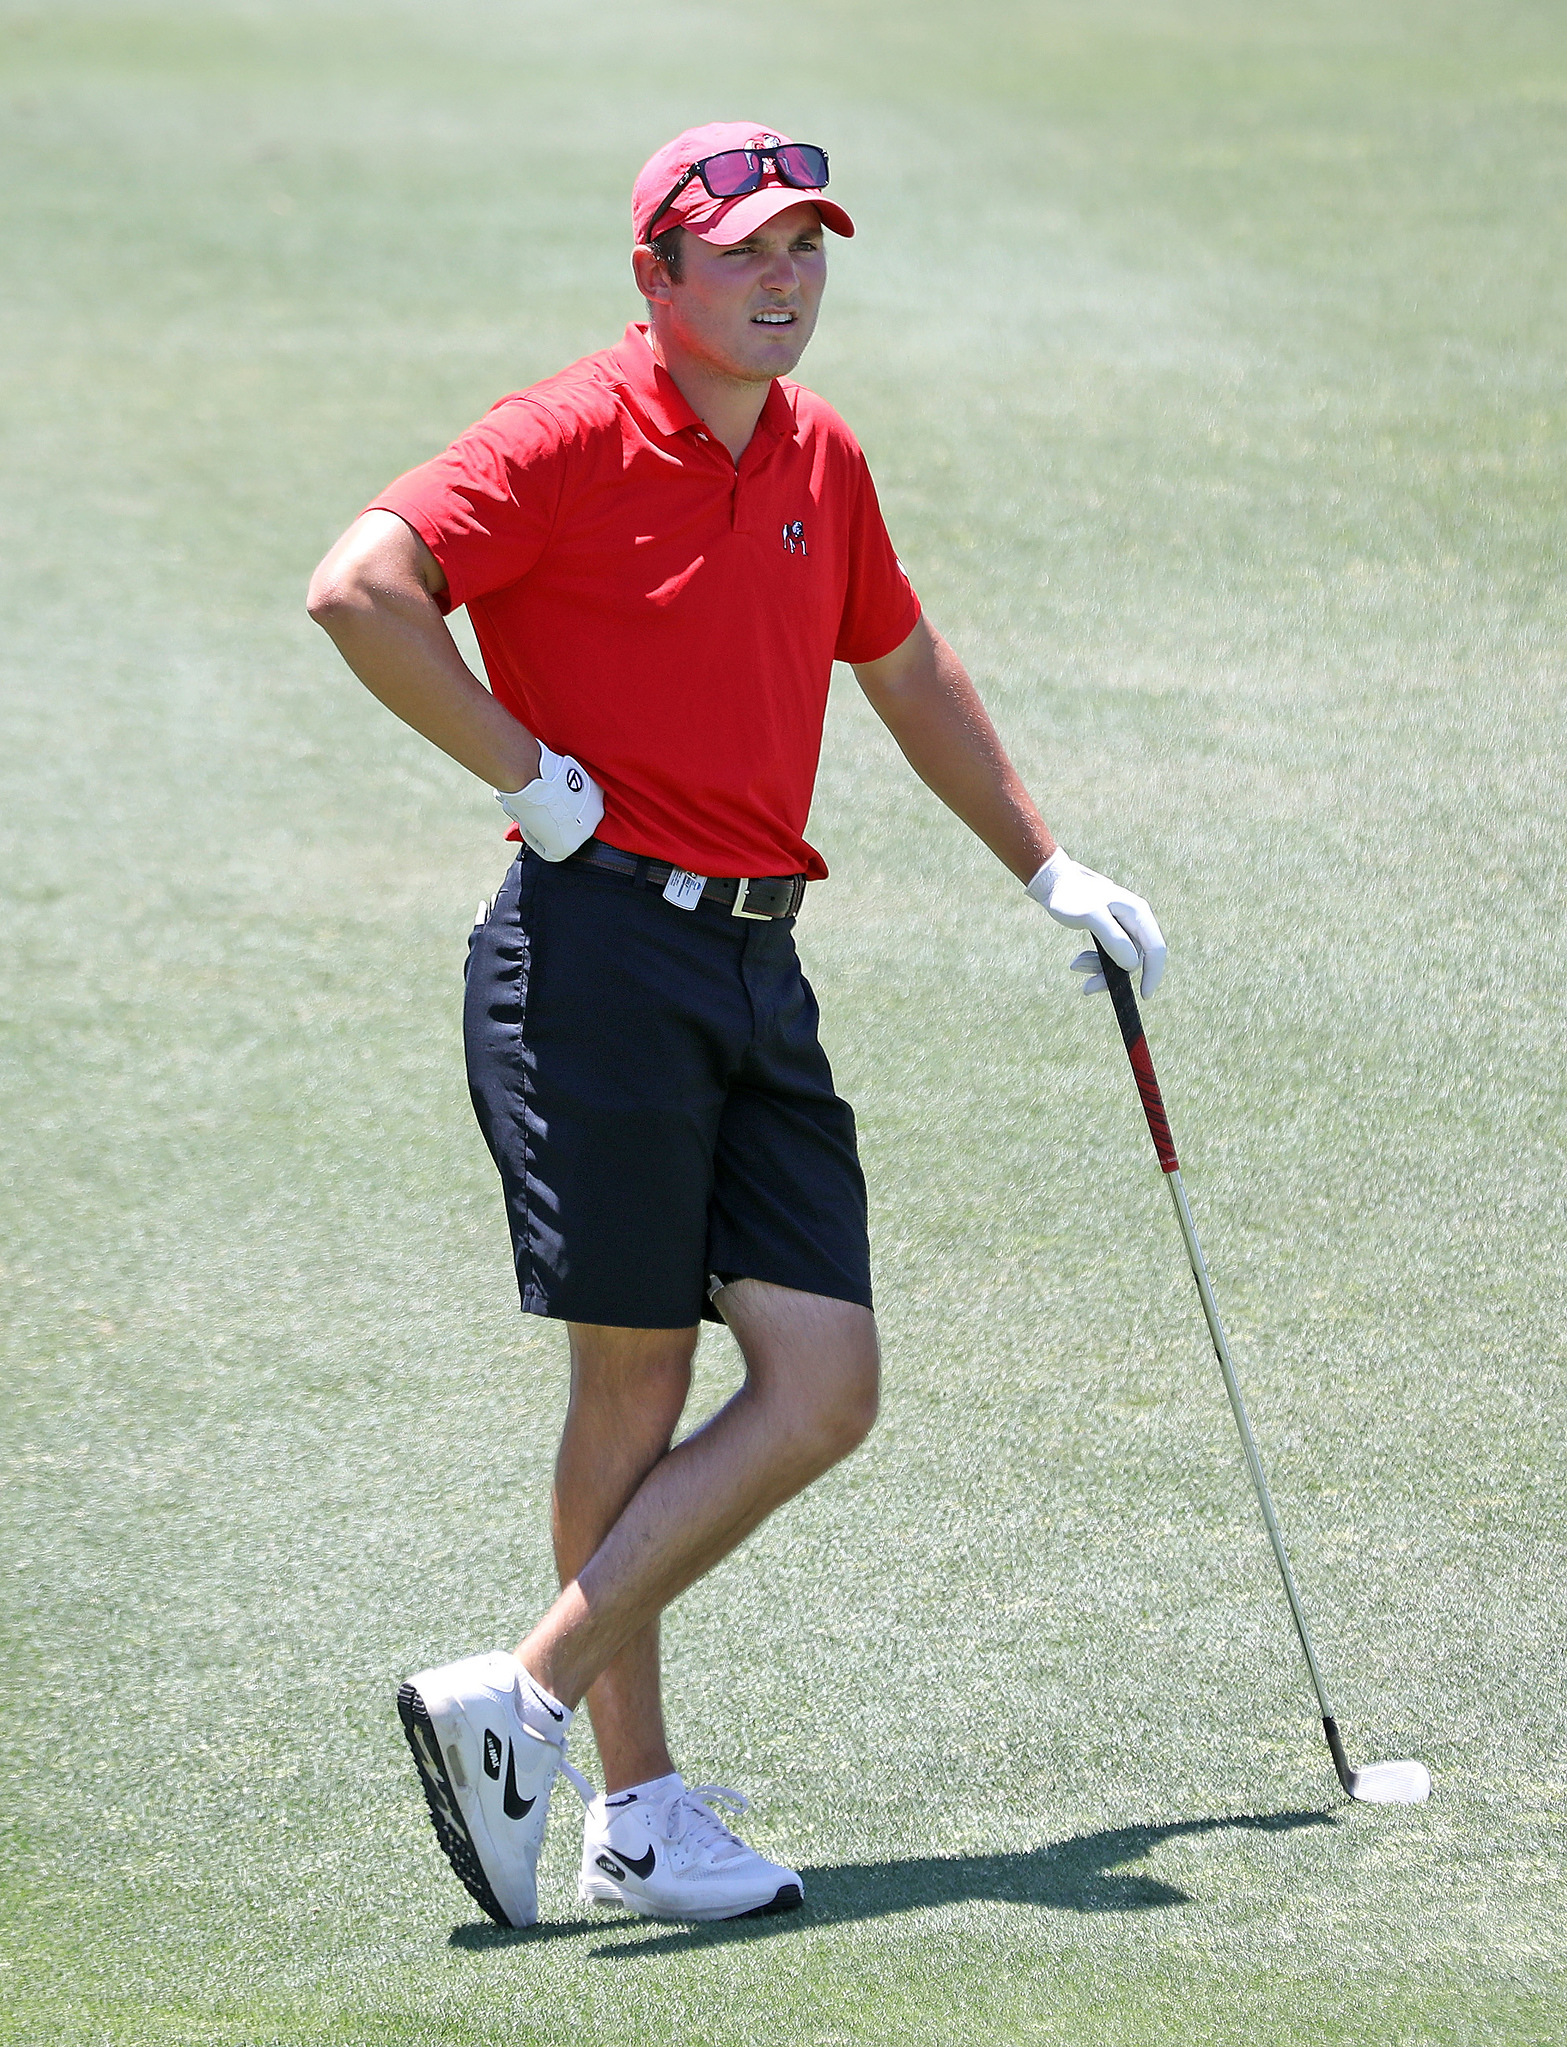 Georgia's Trent Phillips during the third round of the NCAA Championships at Grayhawk Golf Club in Scottsdale, Ariz., on Sunday, May 30, 2021. (Photo by Steven Colquitt)